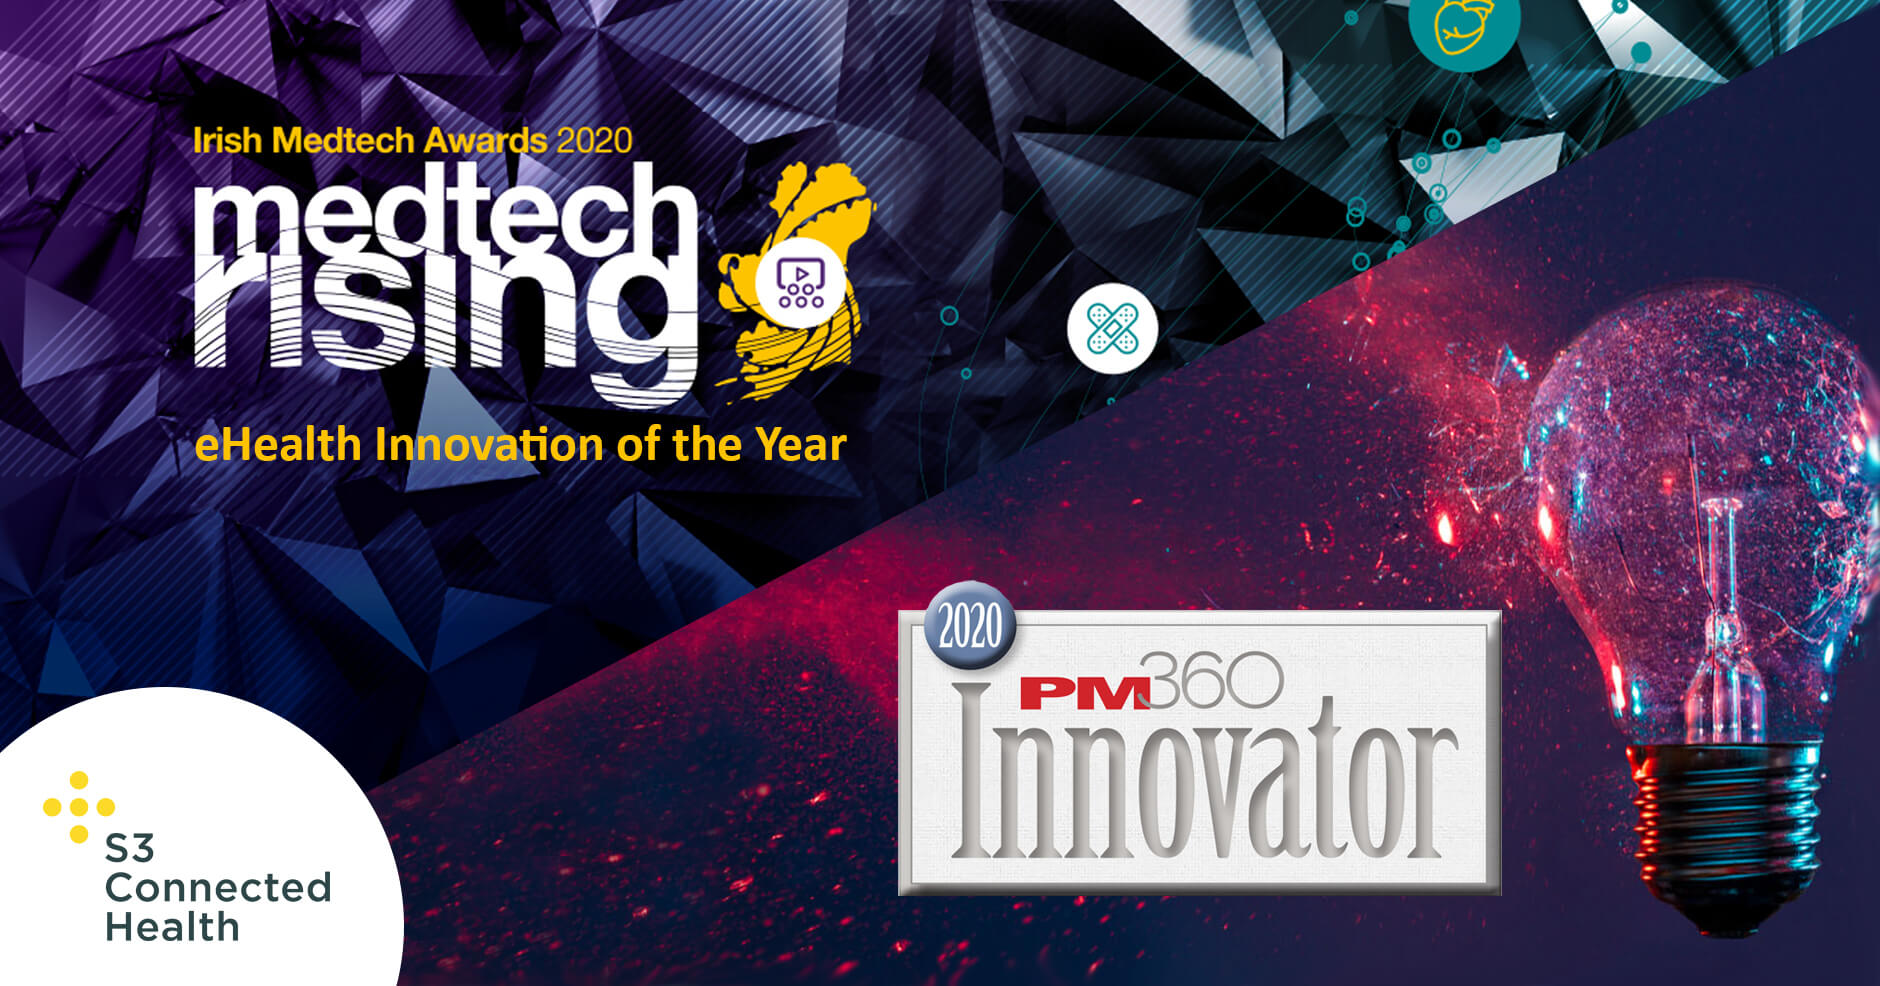 S3 Connected Health recognized for innovation in a time of great need